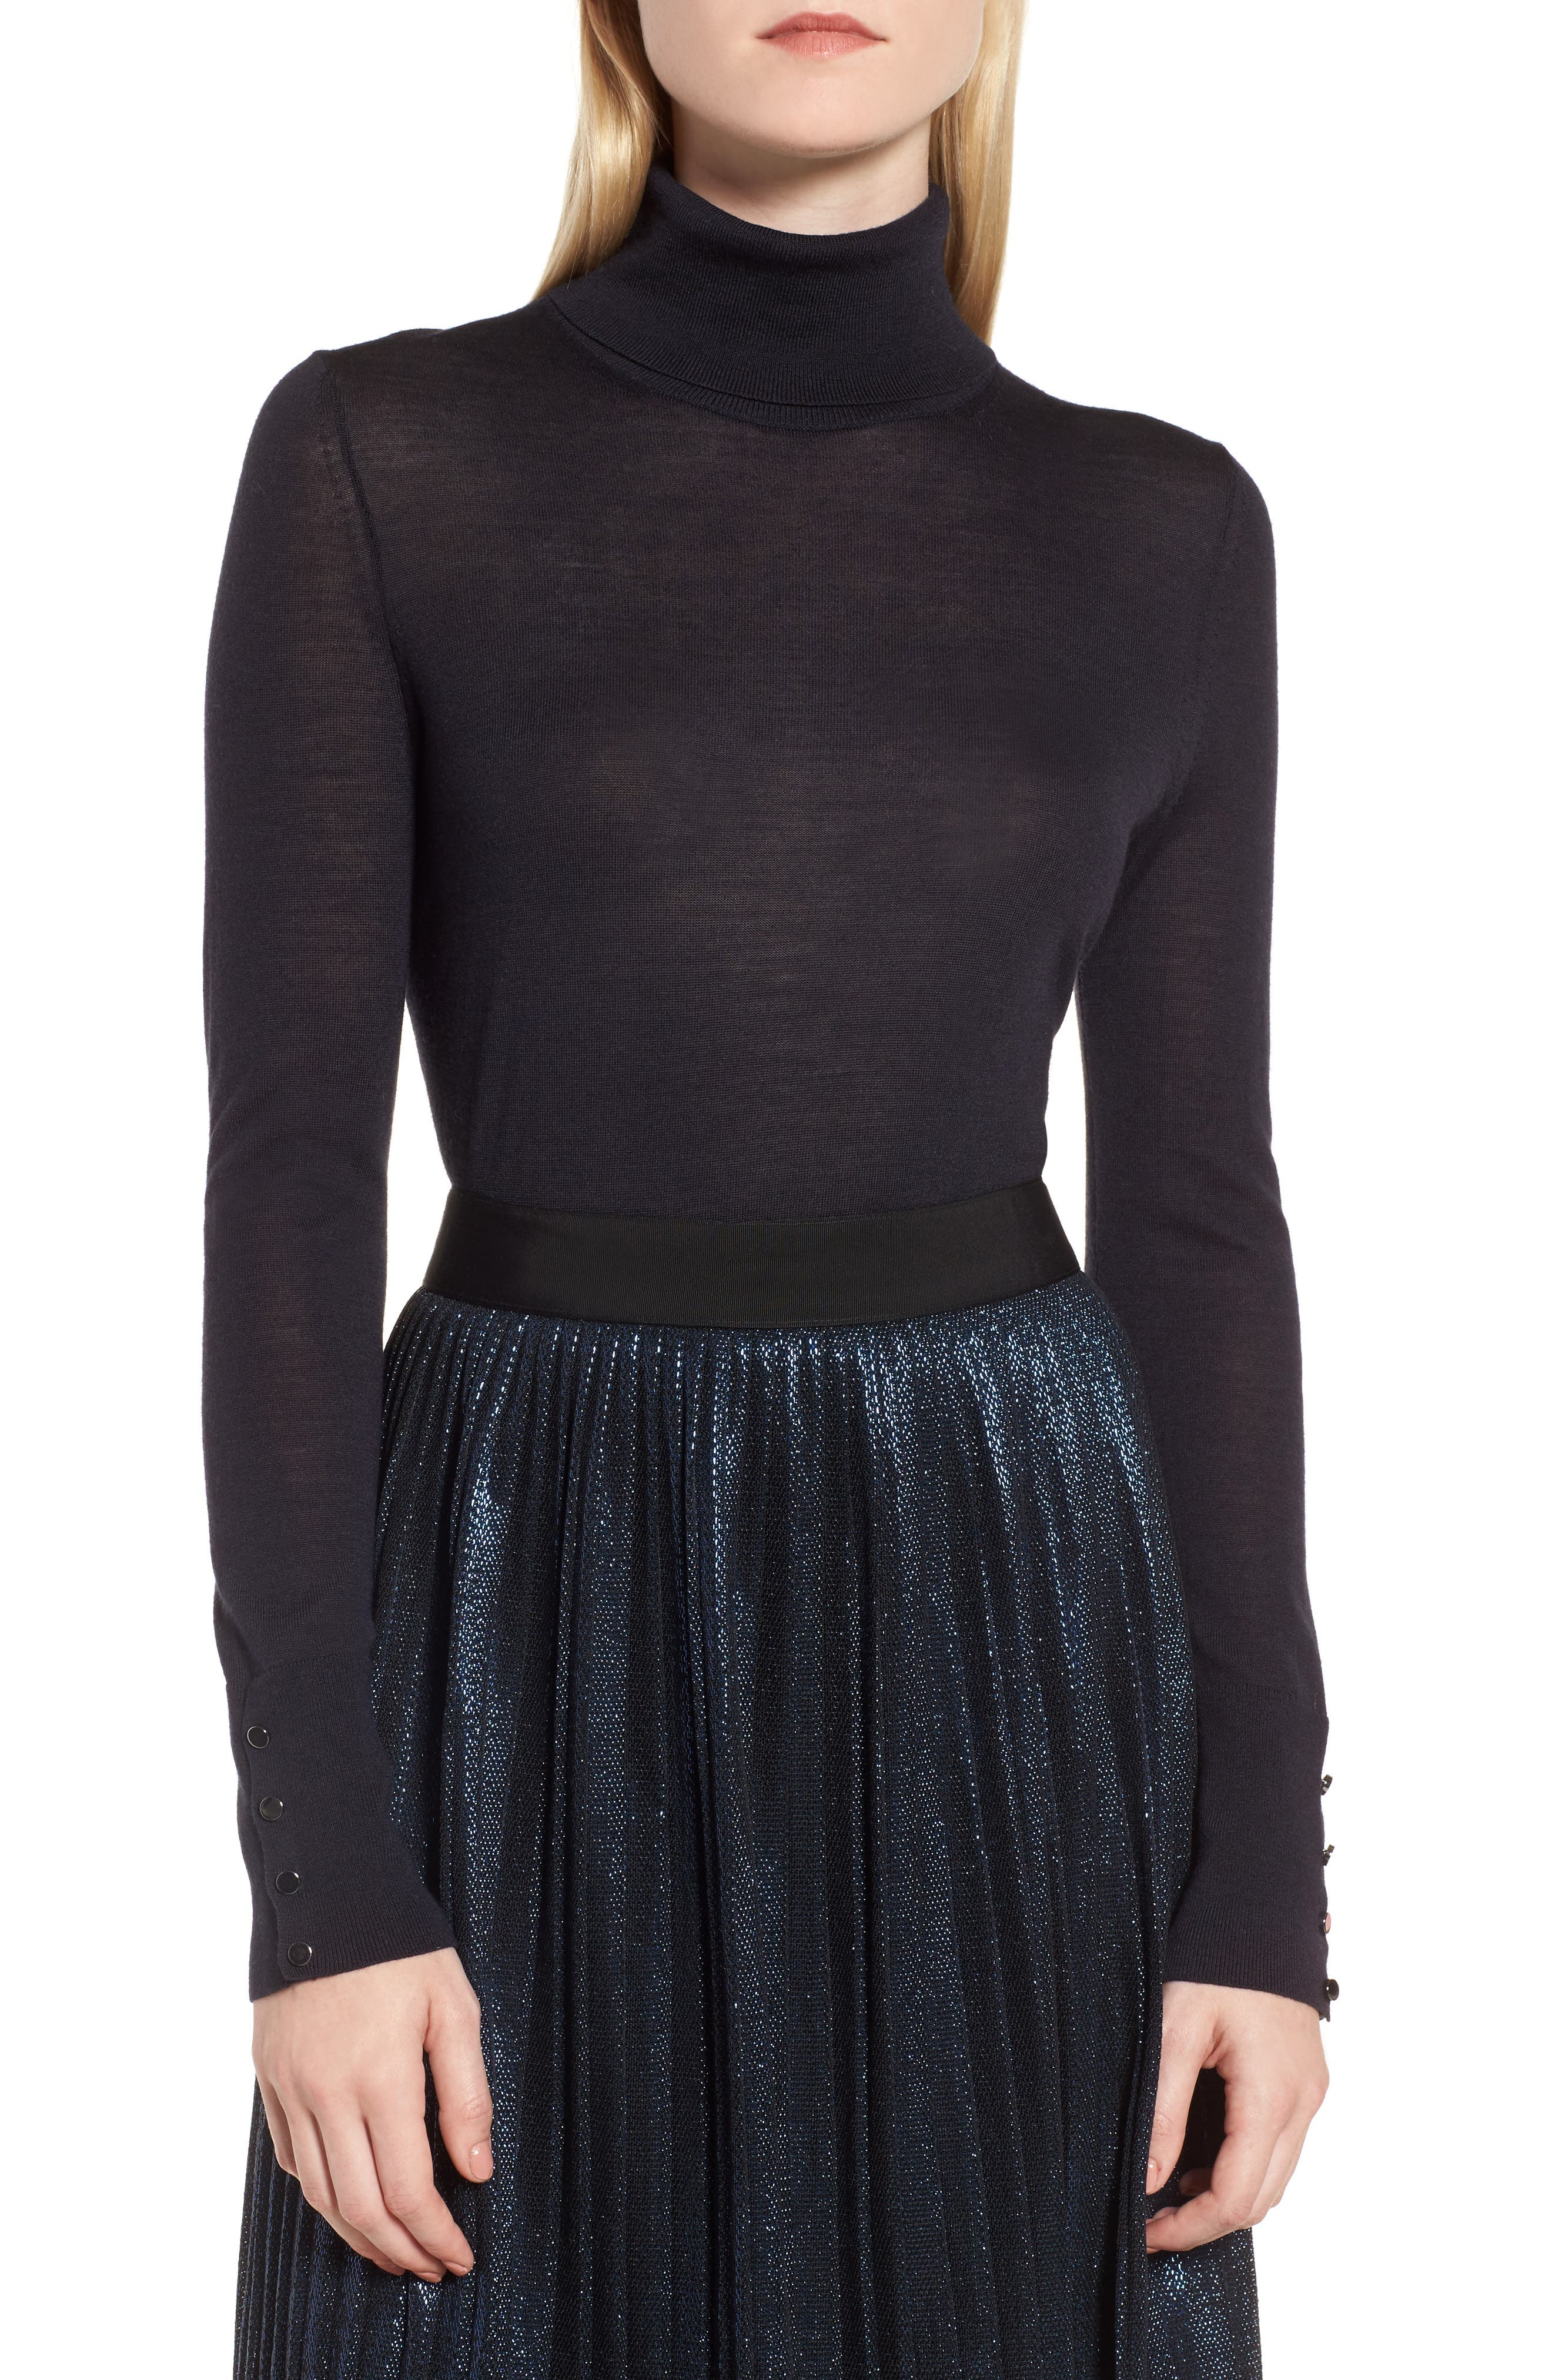 Farrella Wool Turtleneck Sweater,                         Main,                         color, Navy